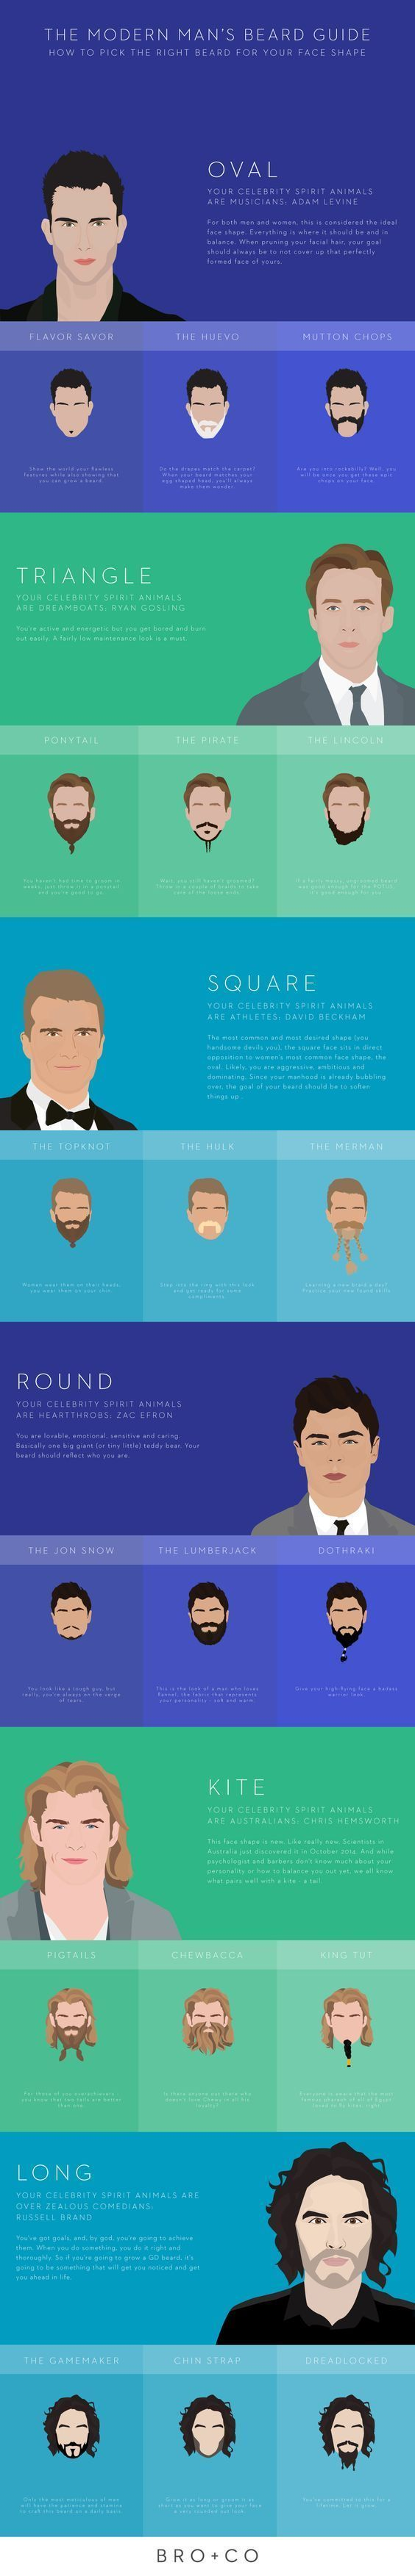 Find your perfect beard with this guide.